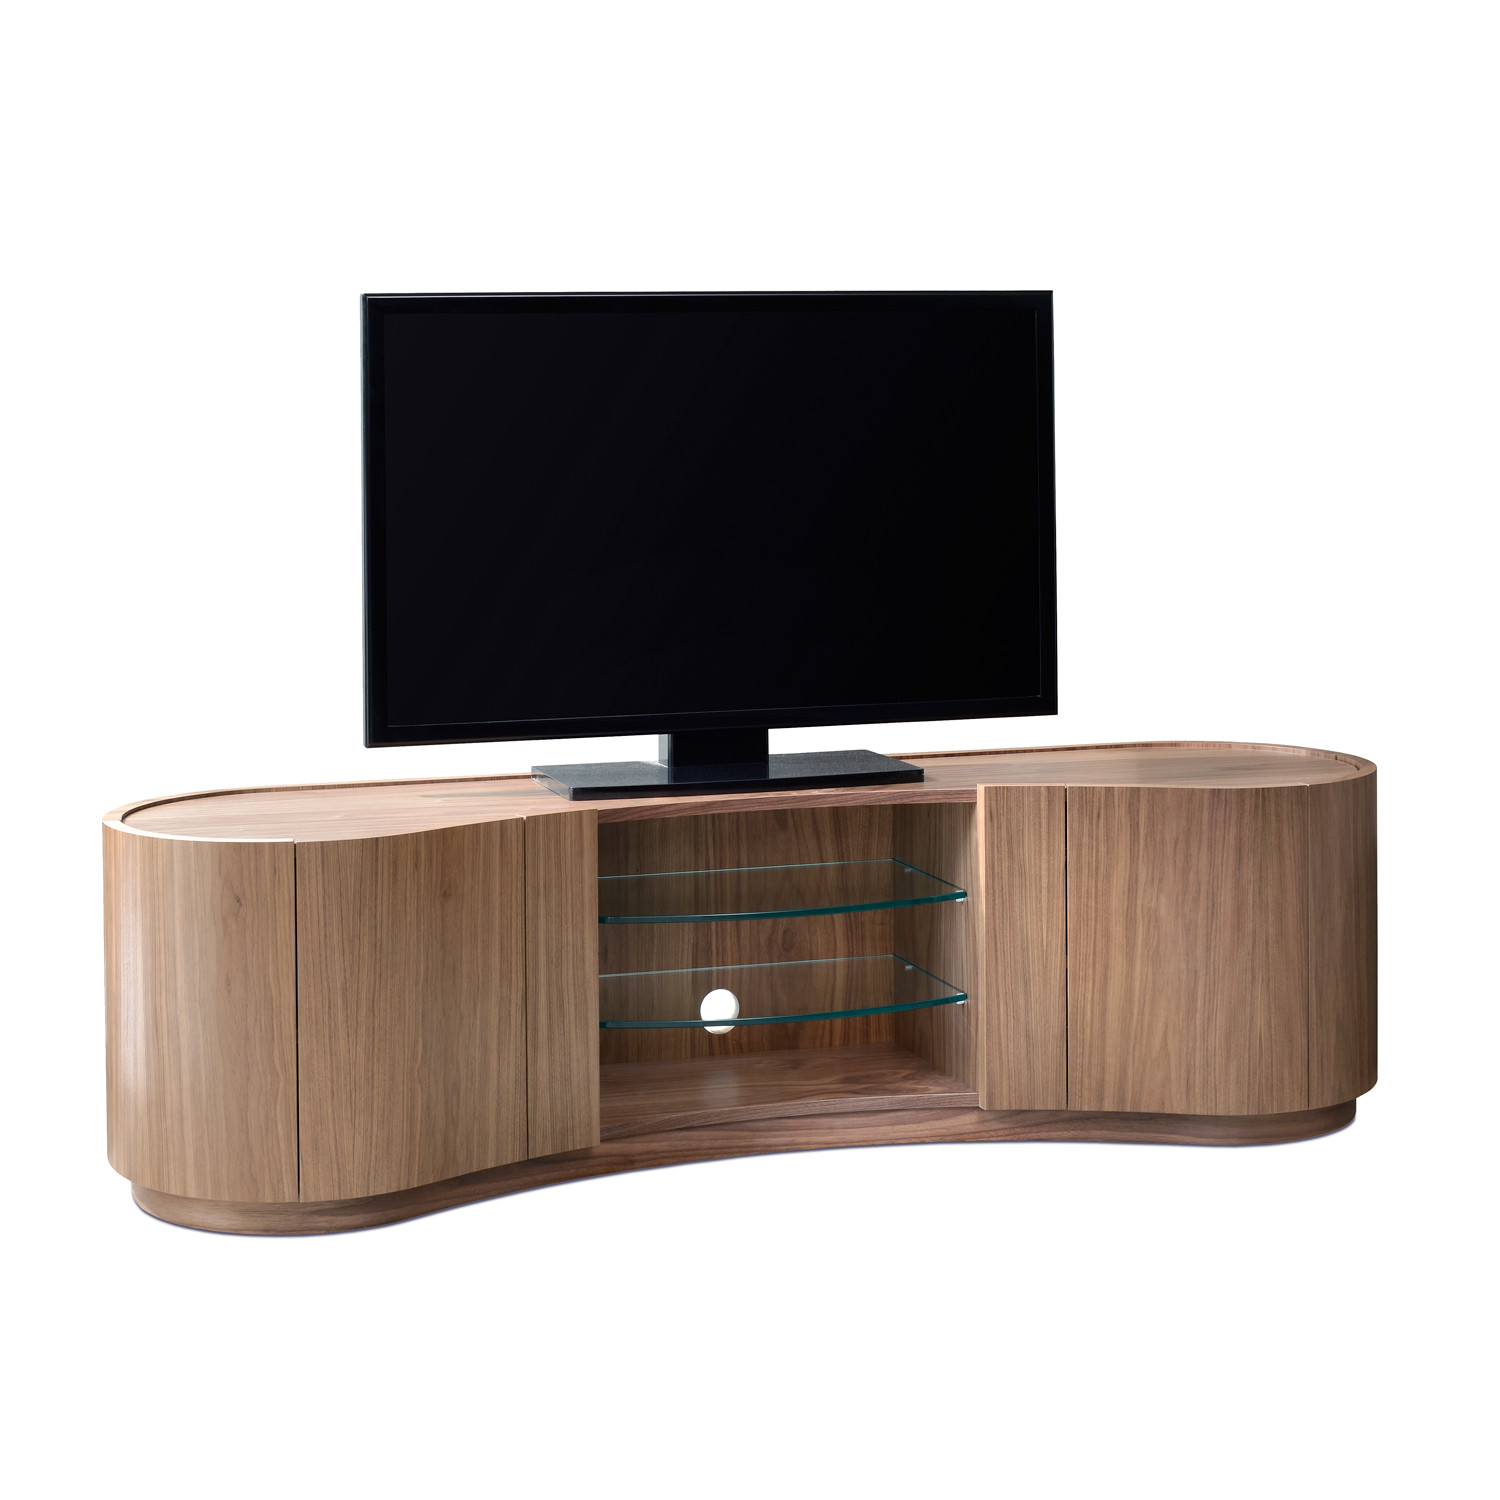 Swirl tv media cabinet tom schneider touch of modern for Tv media storage cabinet